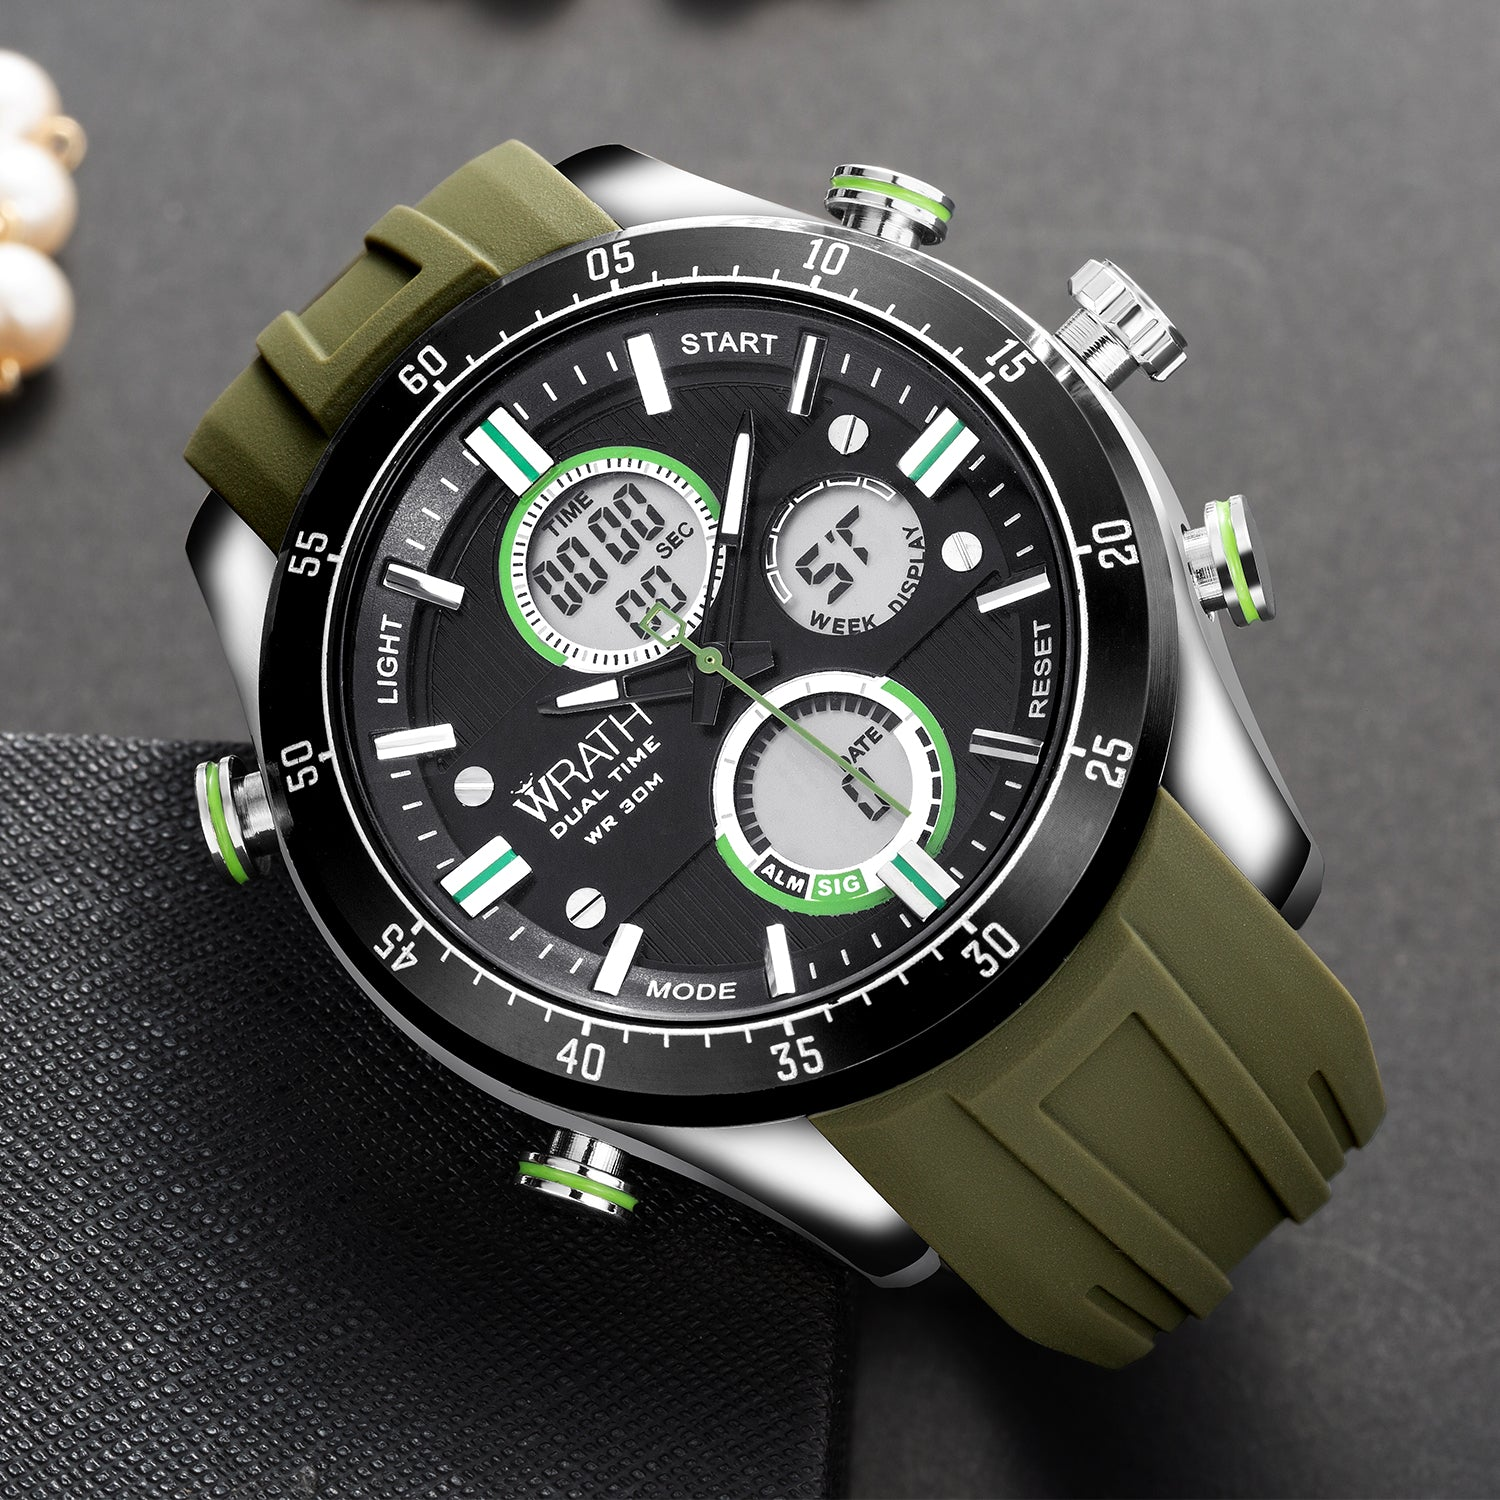 68a81ec2c6f Wrath Ripe Green Sports Analog   Digital Luxury Watch for Men   Boys  (1623 Green)